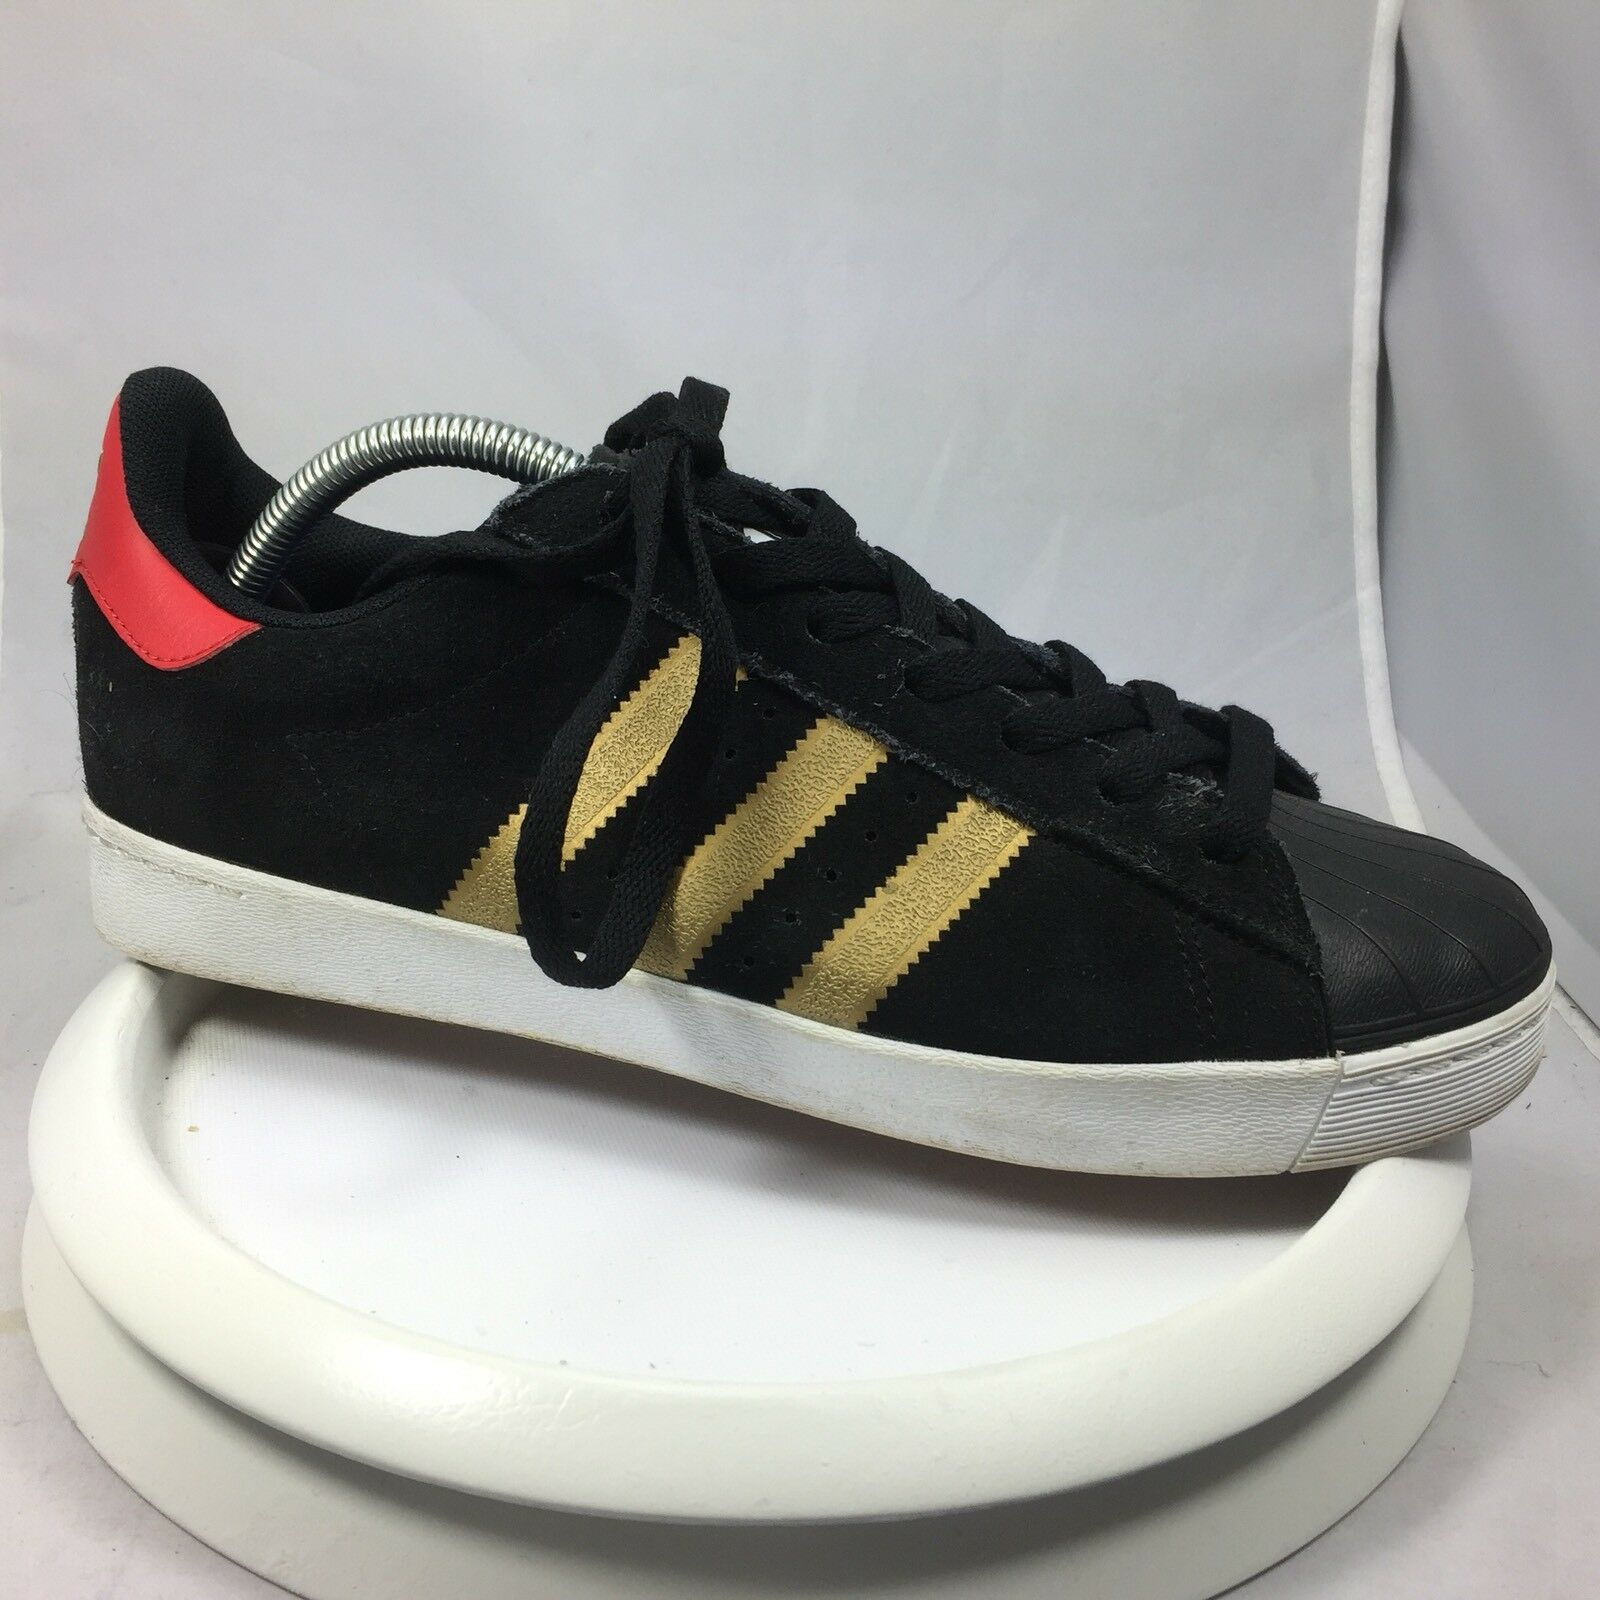 Mens Adidas Originals Adi-Ease Black Canvas Classified Sneakers Price reduction best-selling model of the brand